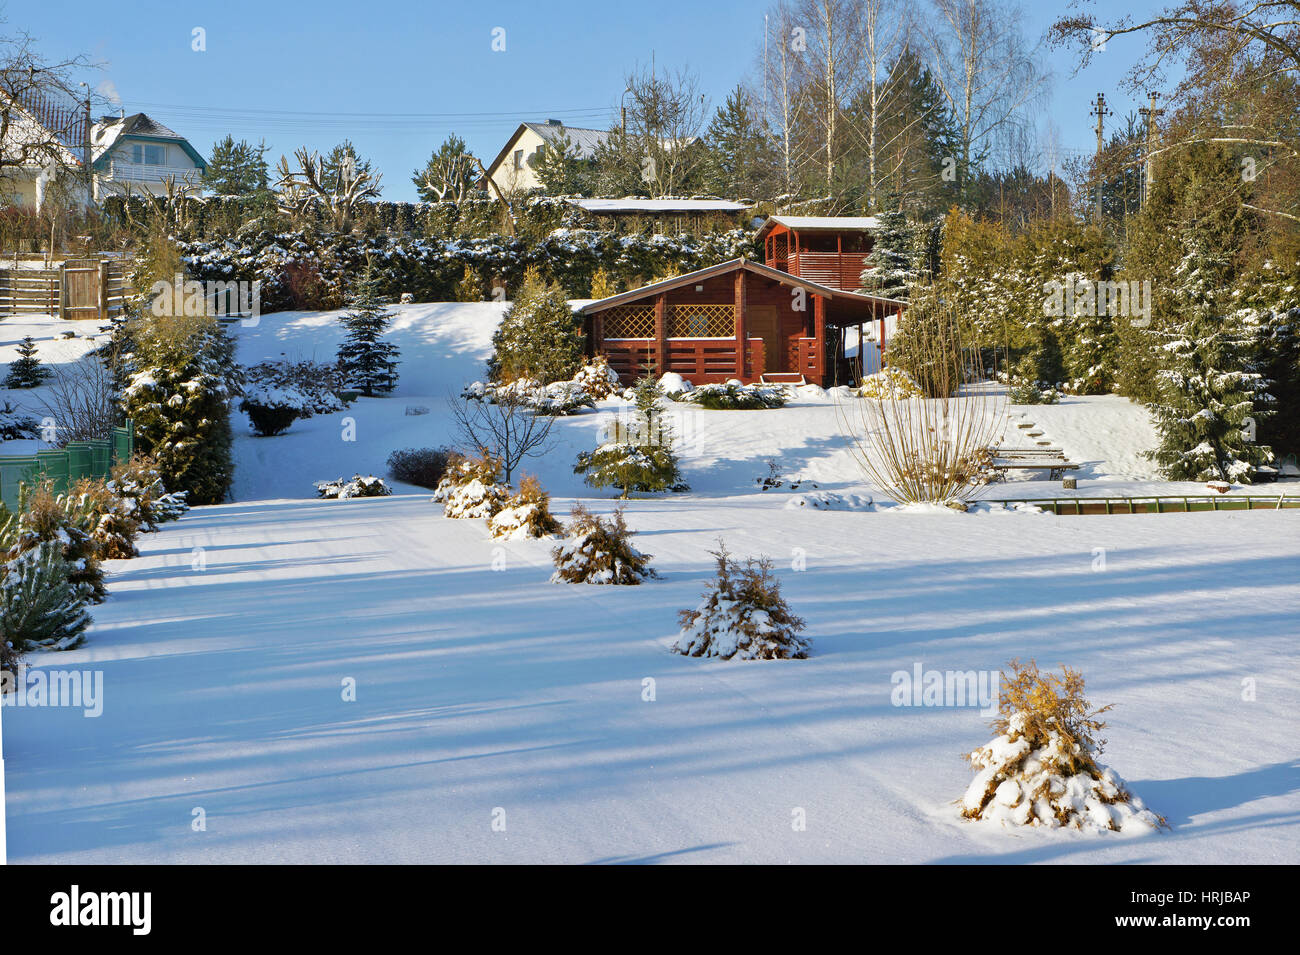 Stock Photo   Wooden Rural No Name Shed In Winter European Garden. Sunny  Day Landscape